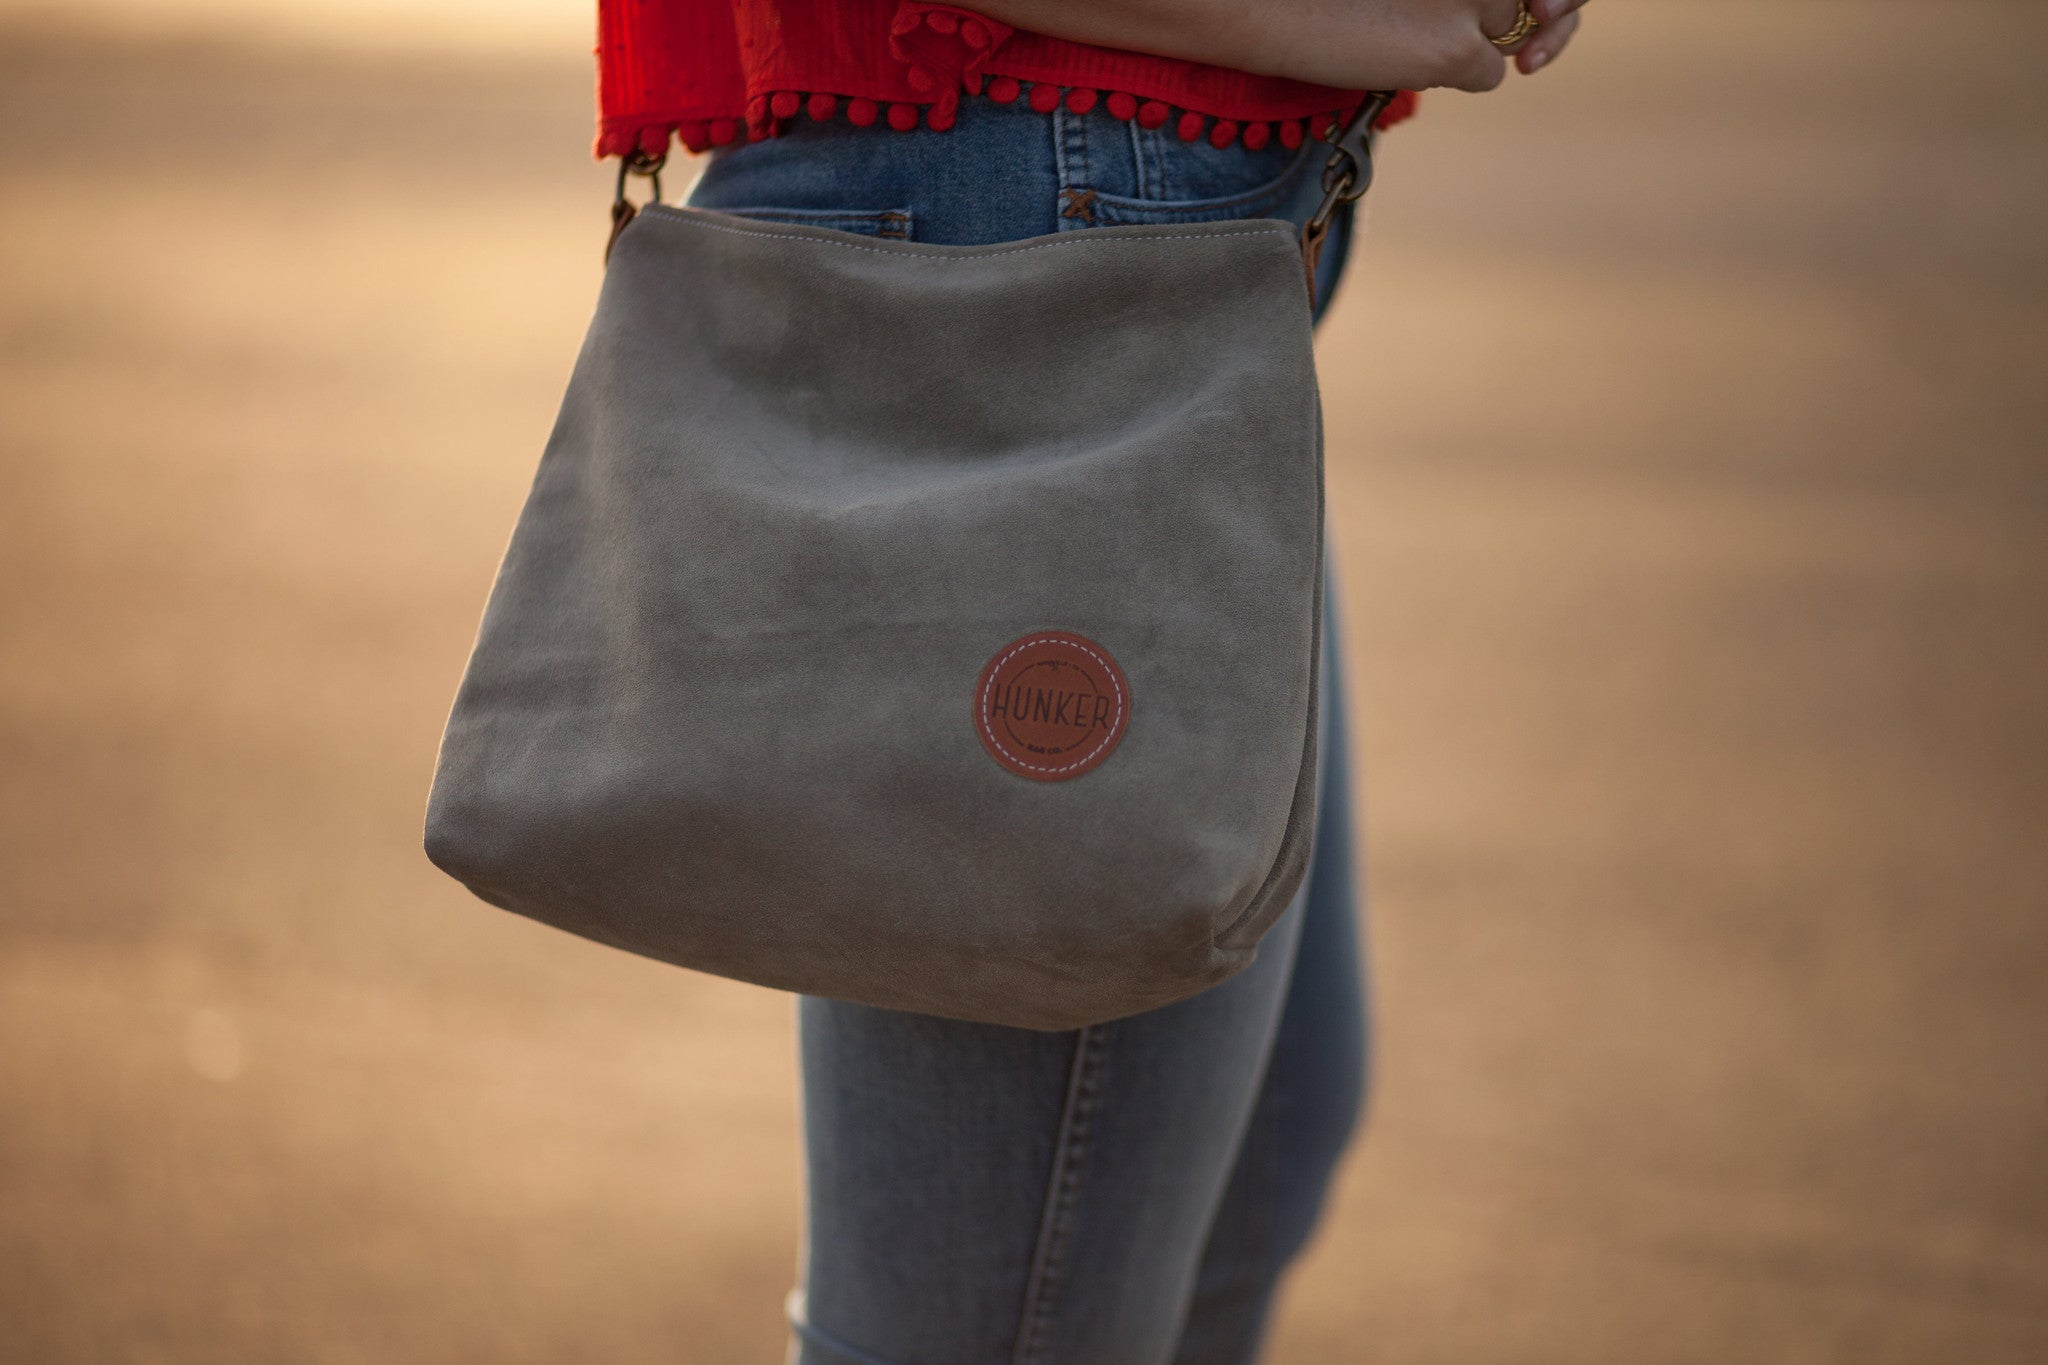 Hunker Bag Co: suede leather tote, hobo, crossbody bag